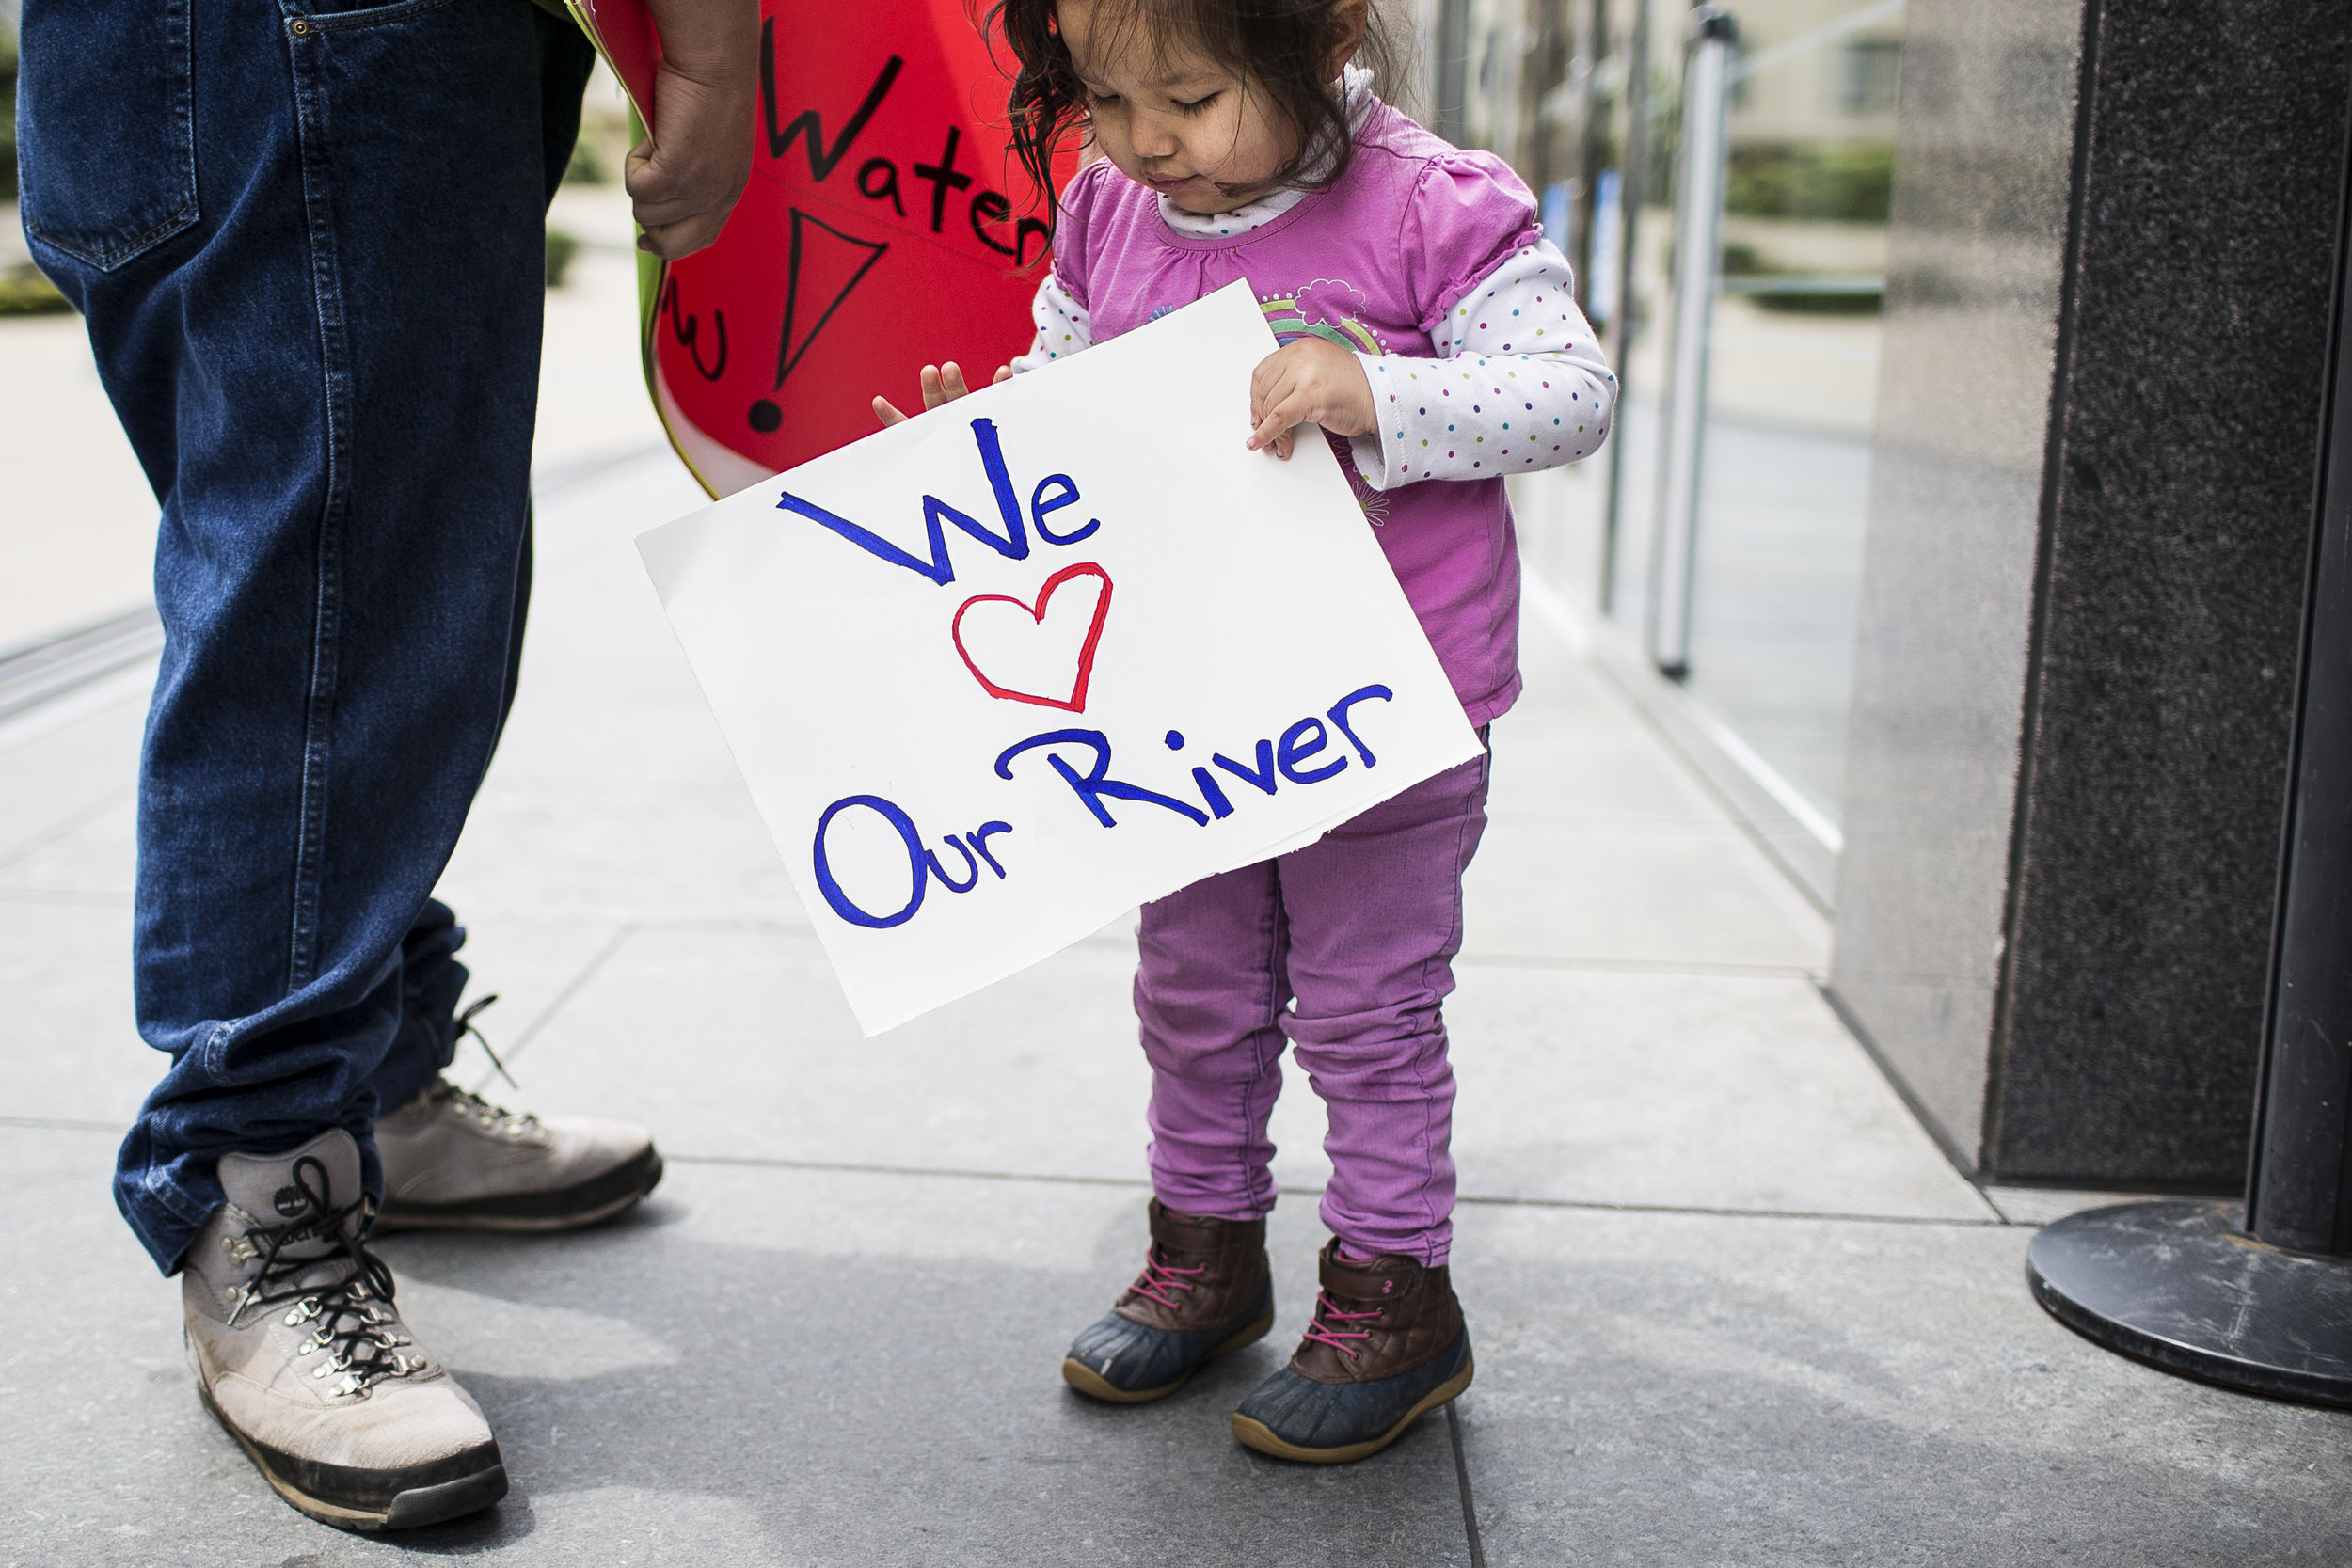 Yurok Tribe members Tseeyaba Kinney (2) and her father Isaac protest outside the Burton Federal Building in San Francisco on Apr. 10, 2018. Martin do Nascimento / Earthjustice